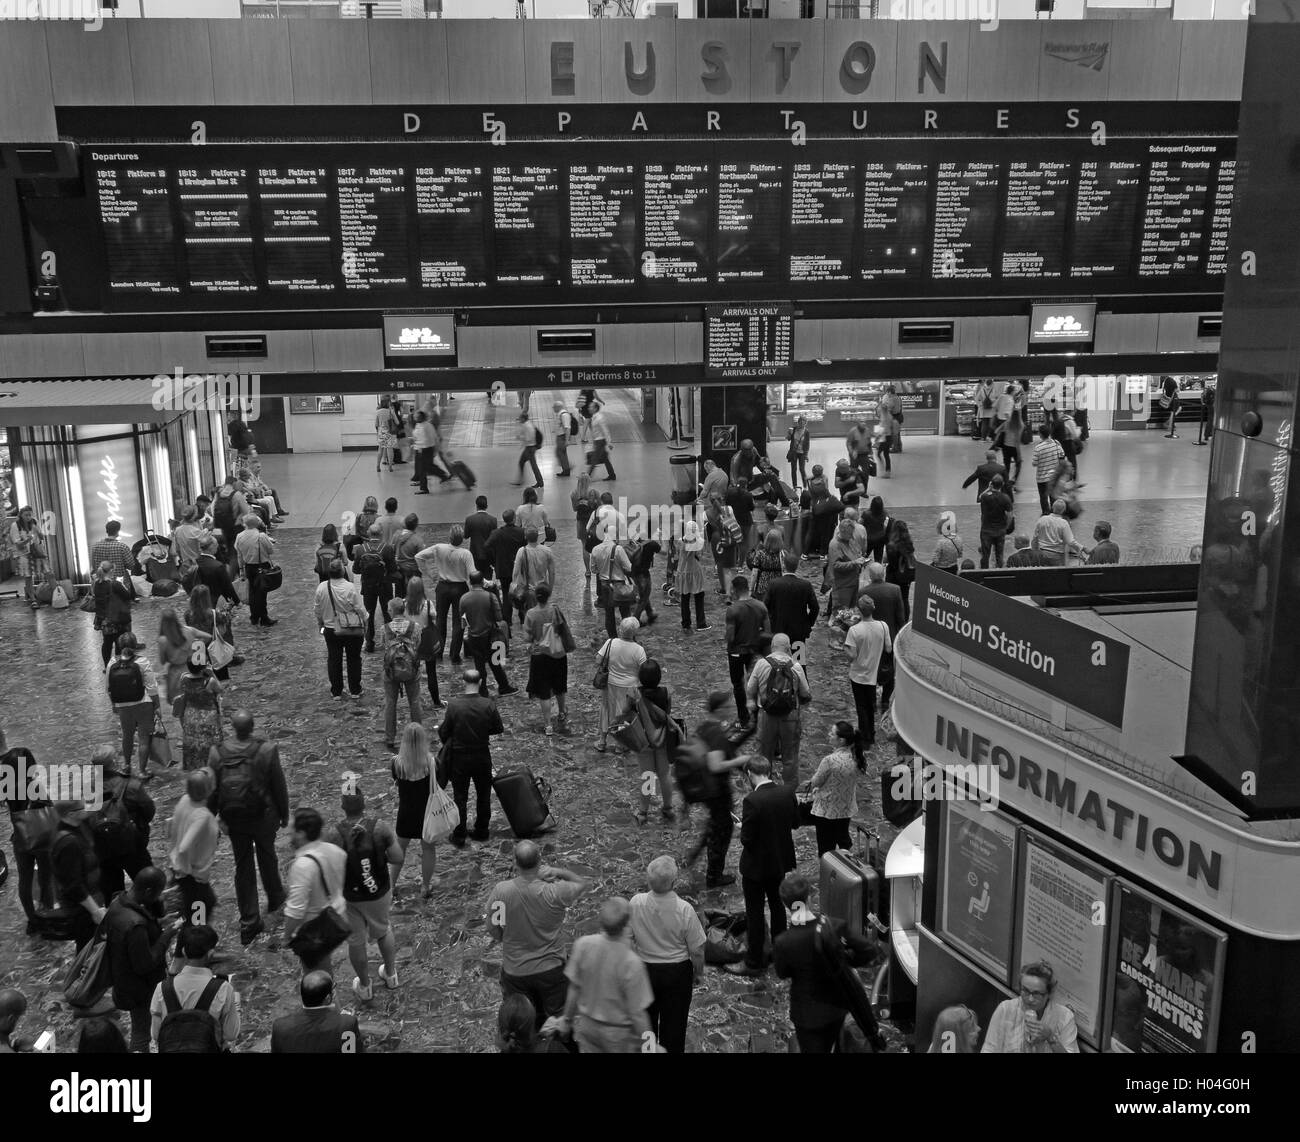 Monochrome Euston railway station departure board and concourse, North London, England, UK - Stock Image